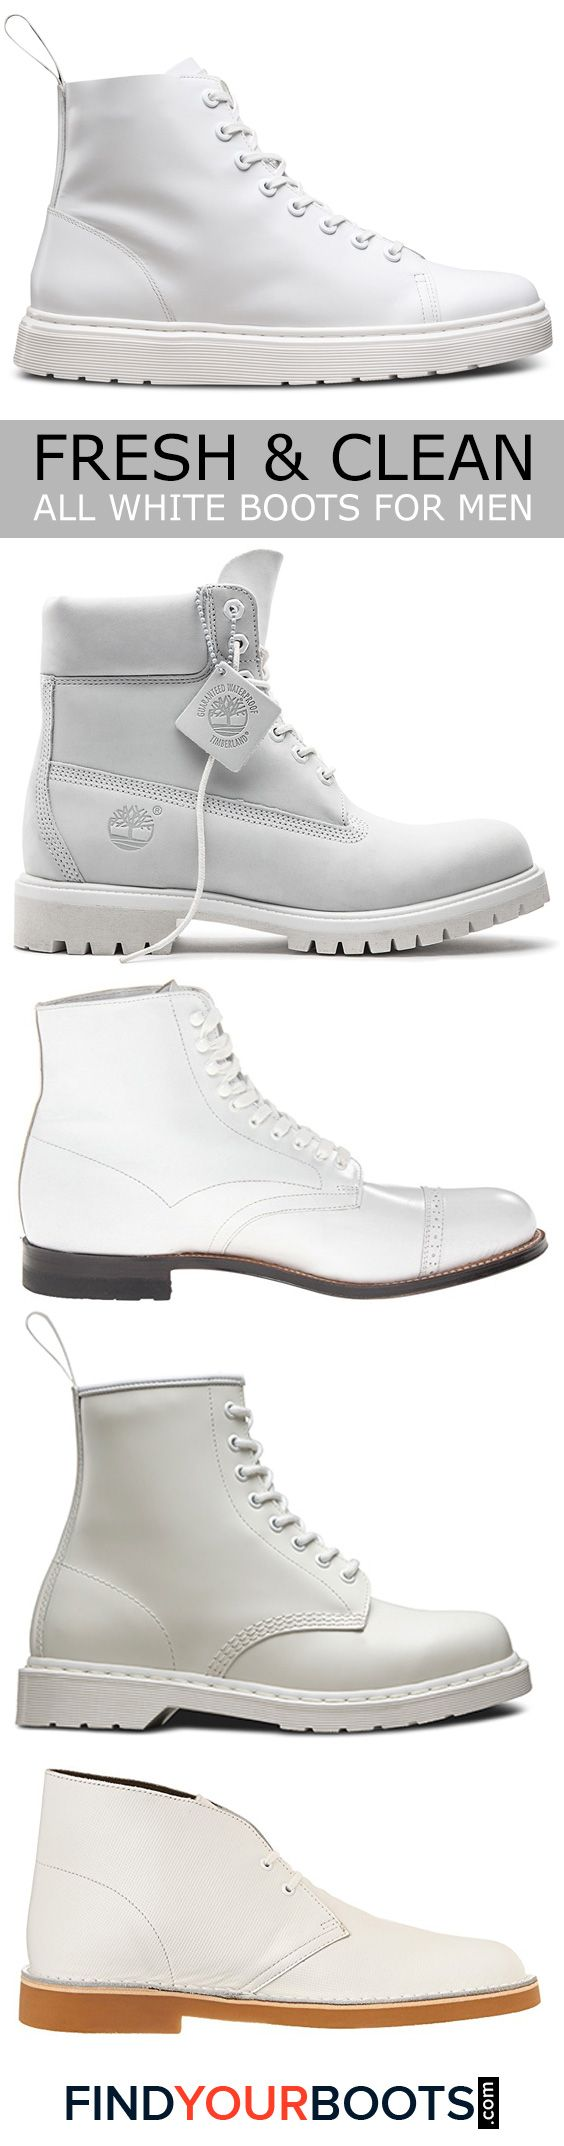 5 Stylish All White Boots for Men - White boots are not only a bold fashion statement but a smart alternative to white sneakers during inclement weather. Here we review our favorite all white boots for men that are available right now.